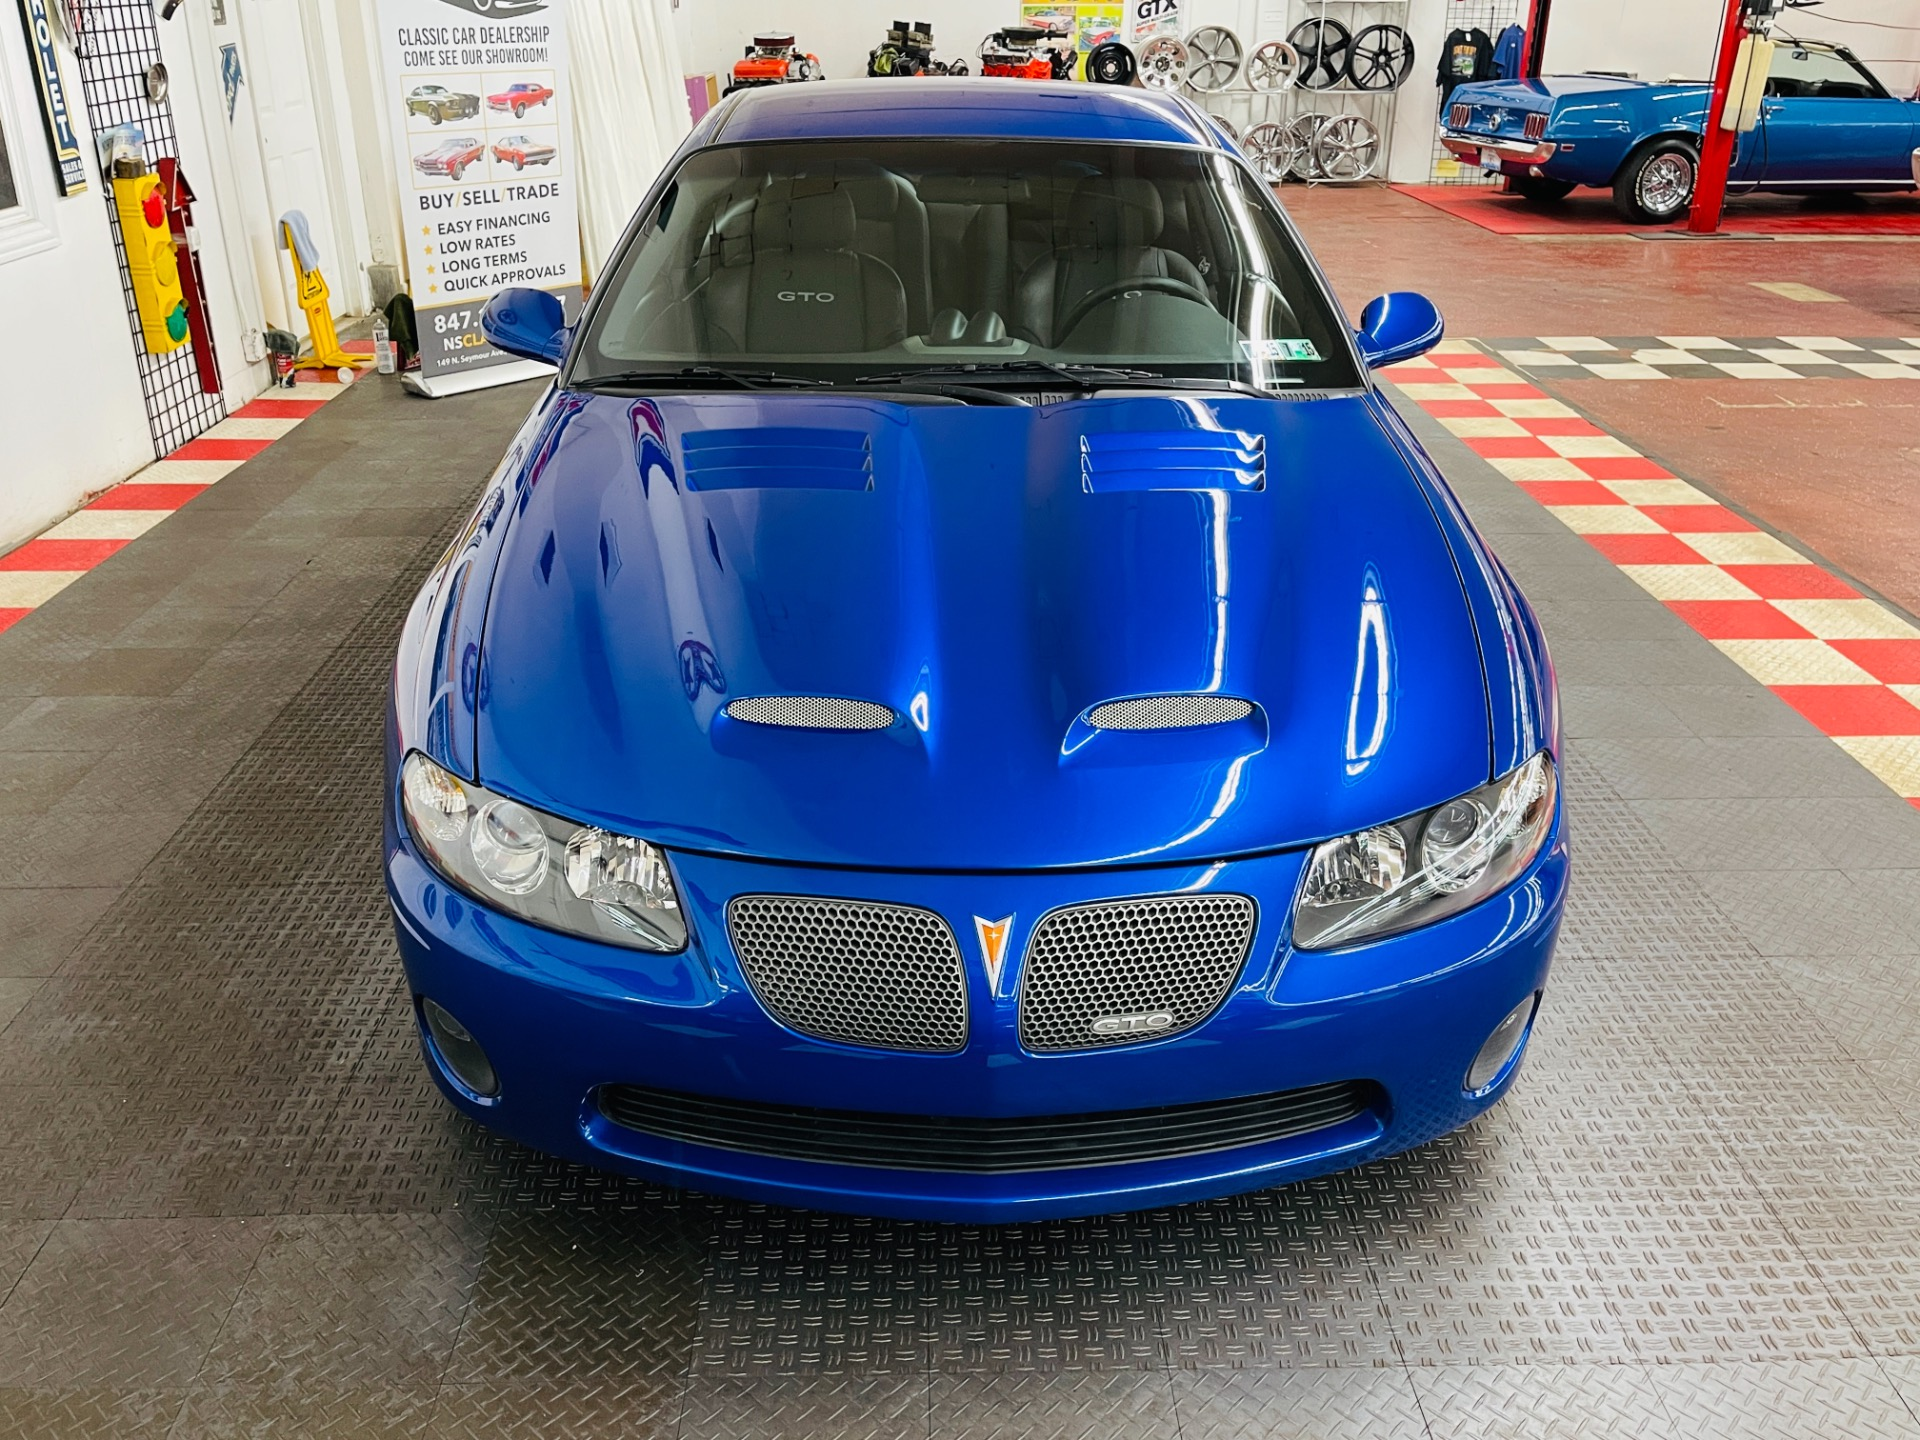 Used 2005 Pontiac GTO - SUPER LOW MILES - EXCELLENT CONDITION - SEE VIDEO | Mundelein, IL